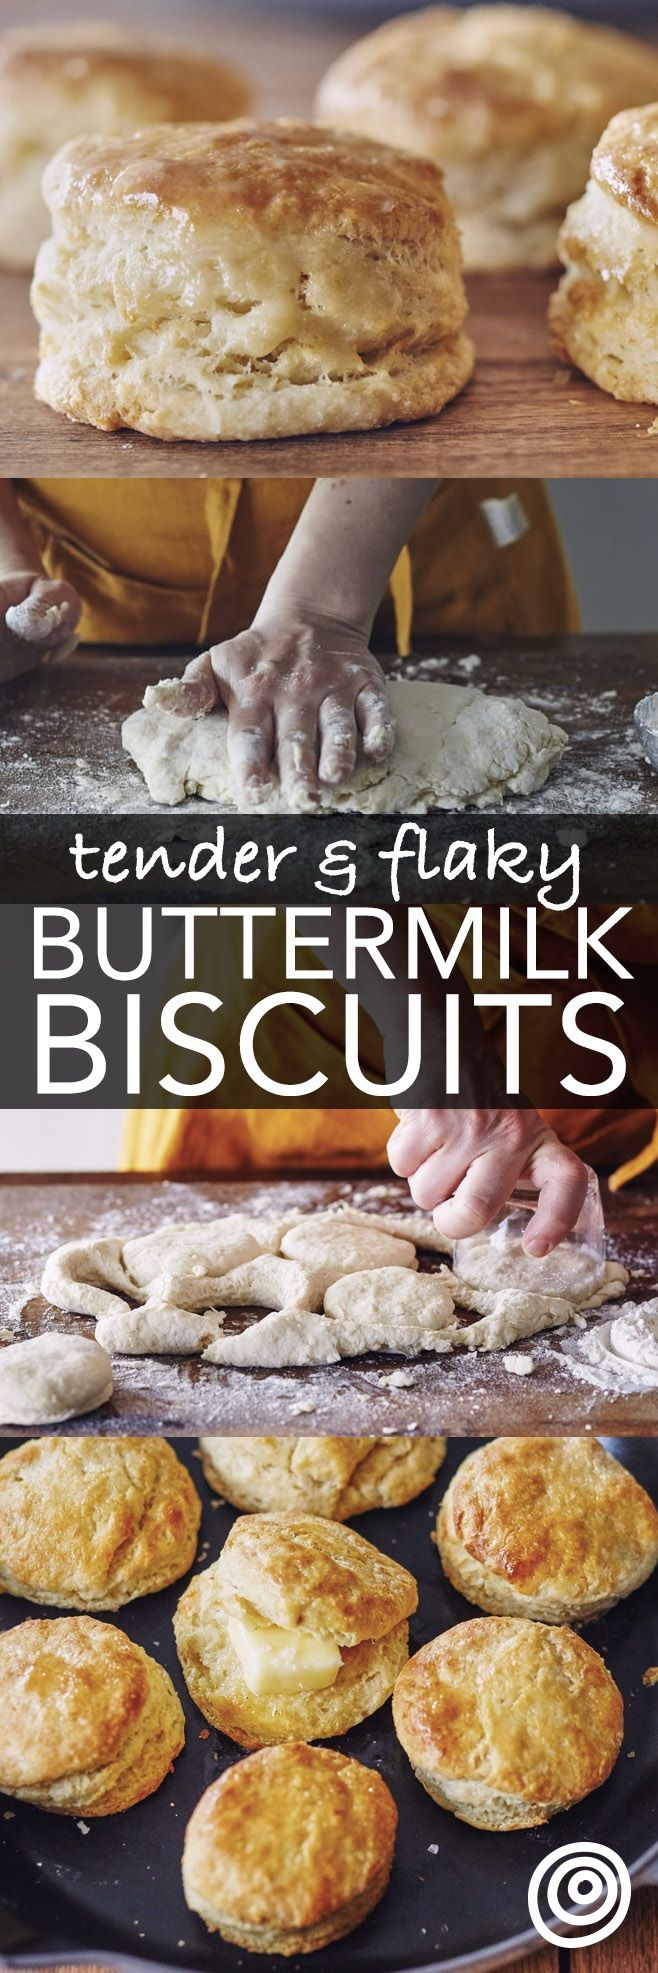 How to Make Classic Southern Buttermilk Biscuits from Scratch, an Easy Step-by-Step Recipe with Photos. One of the best ideas you'll ever have is serving up a simple basket of these for breakfast with gravy!